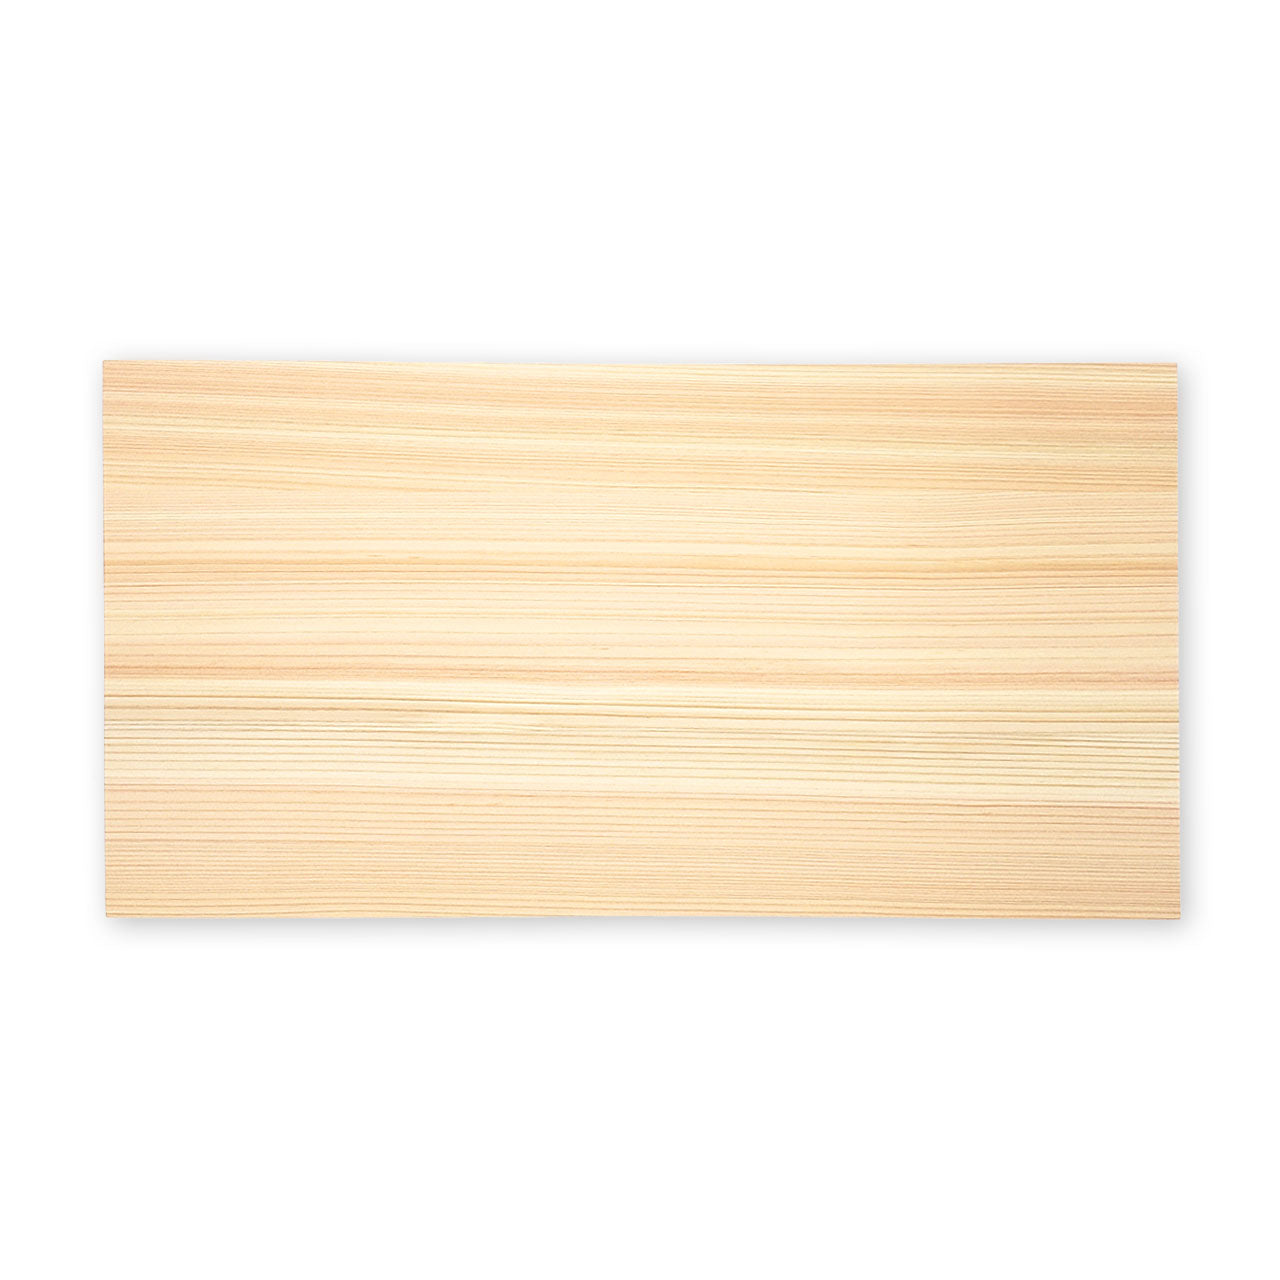 "[NEW] Hinoki (Japanese Cypress) Cutting Board  18.8"" x 9.4"" x 1.6"" ht"